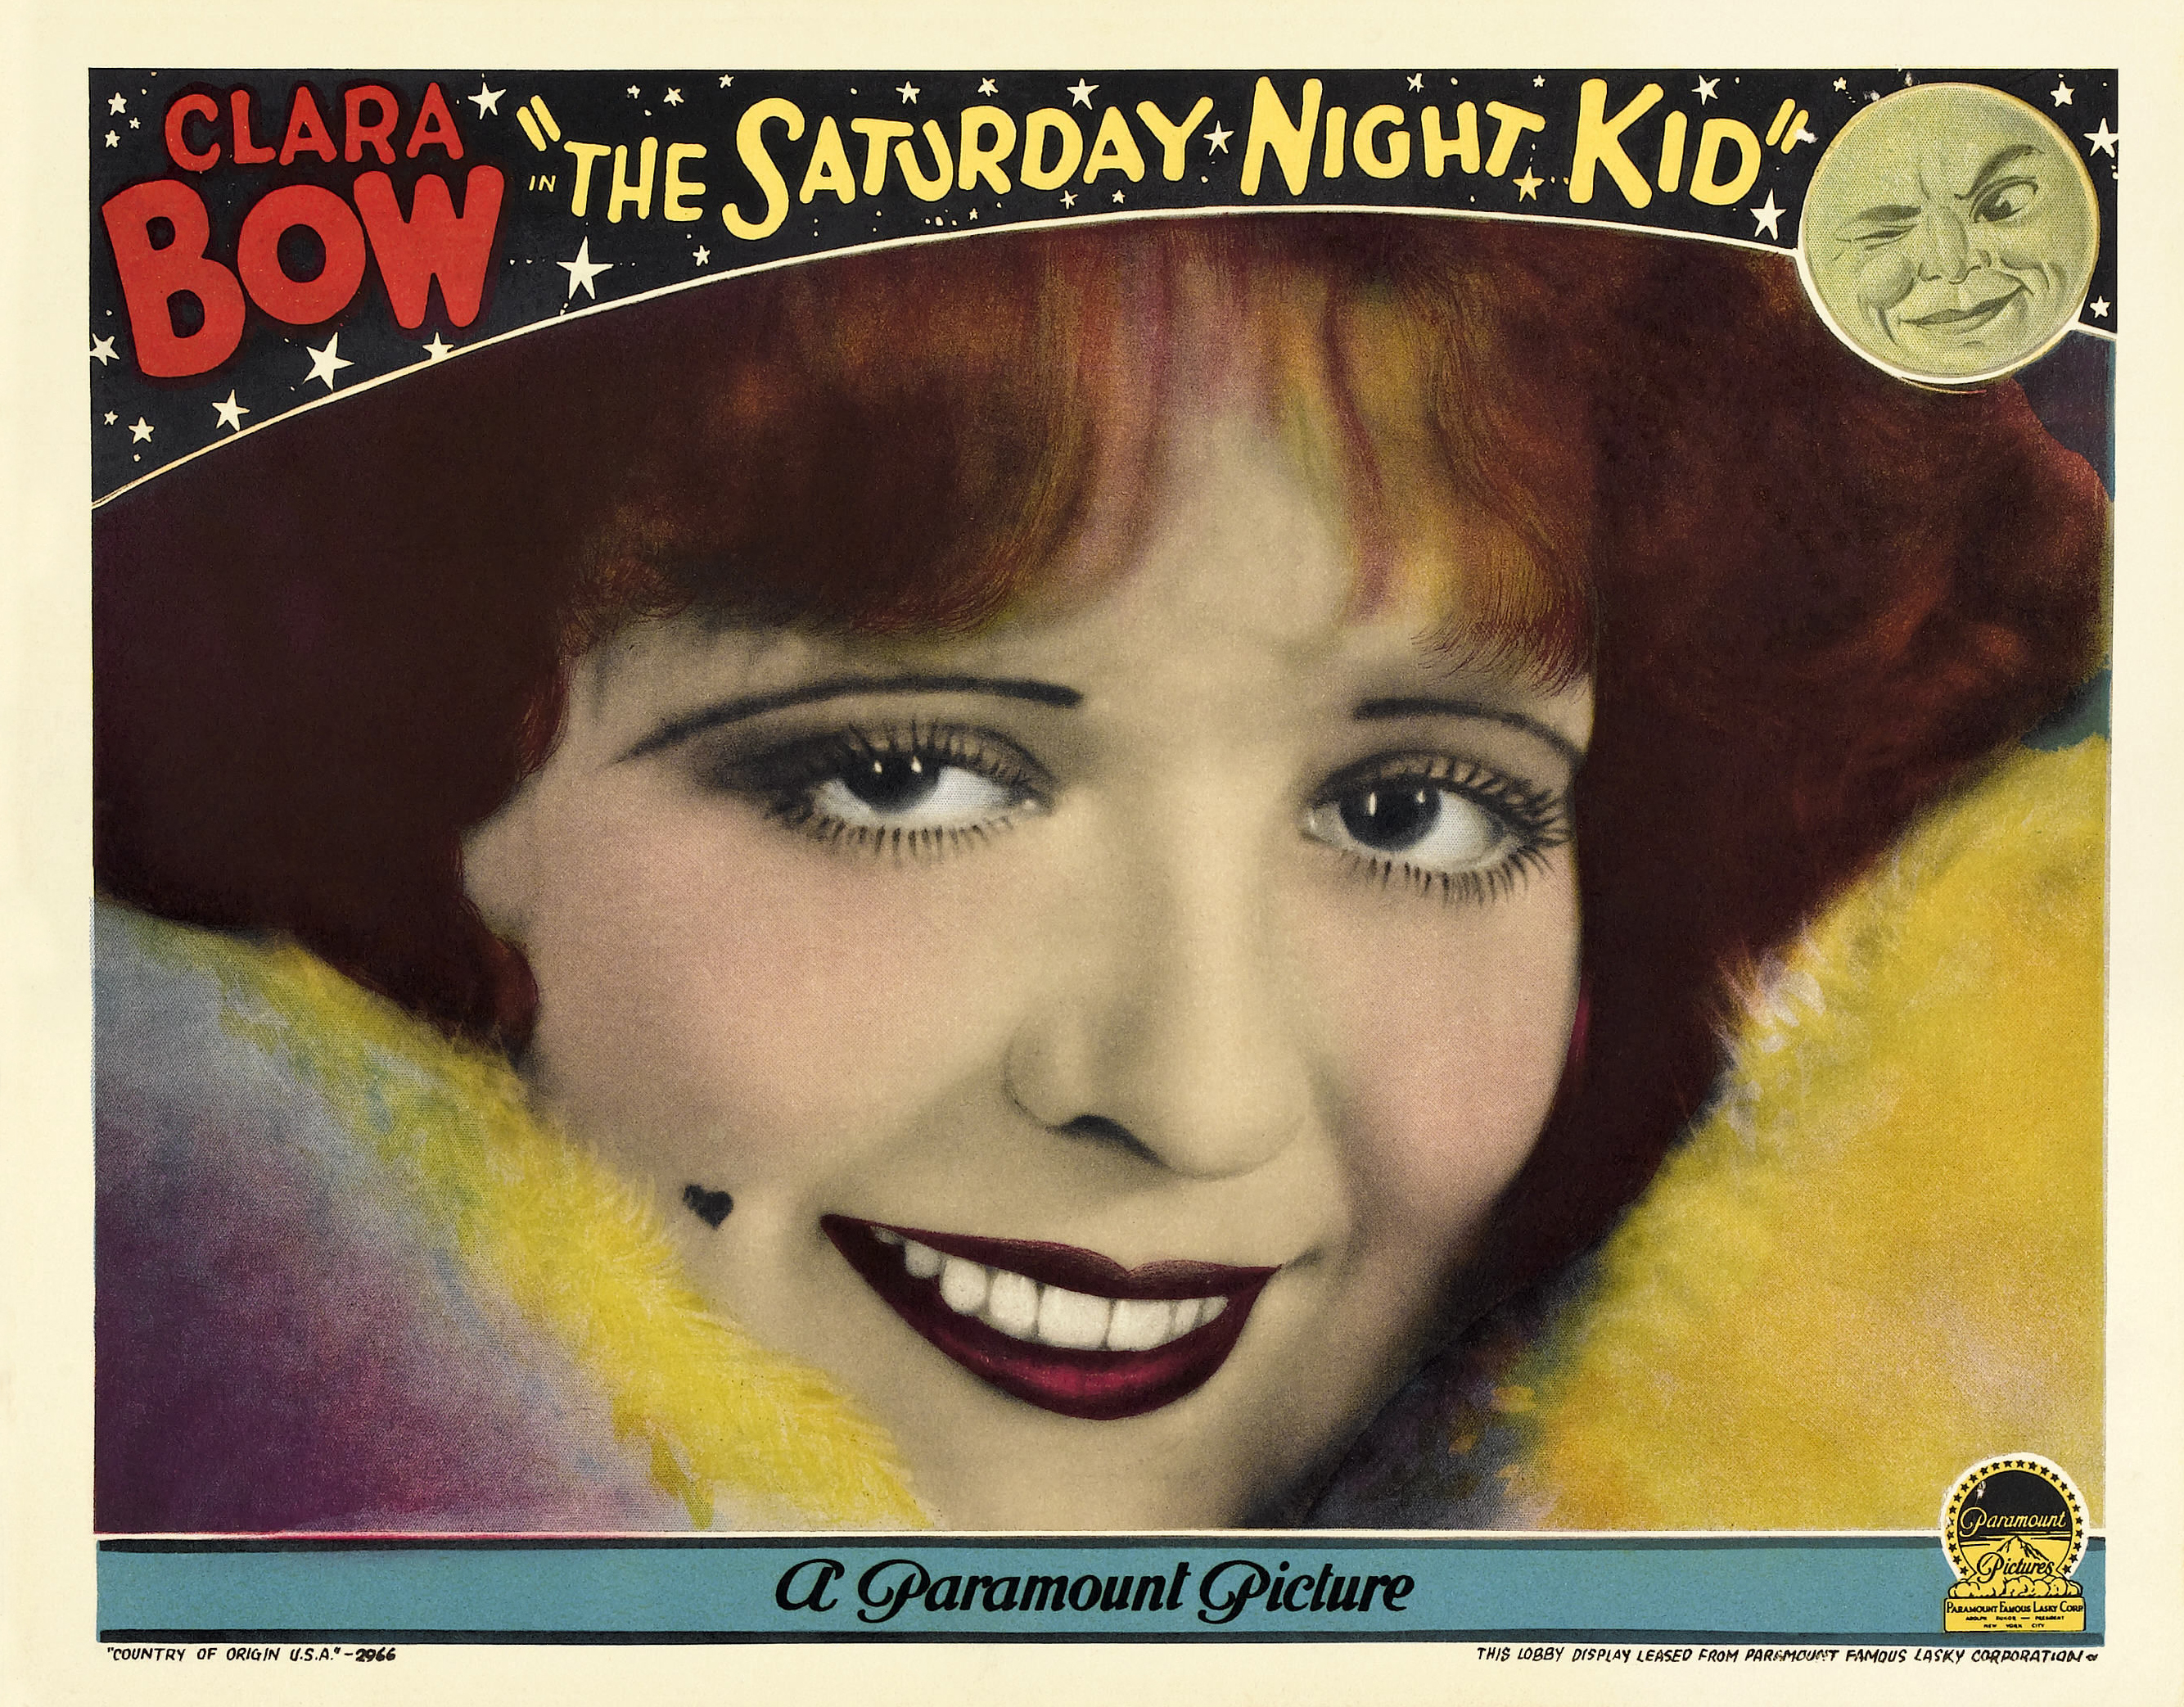 Clara Bow in The Saturday Night Kid (1929)